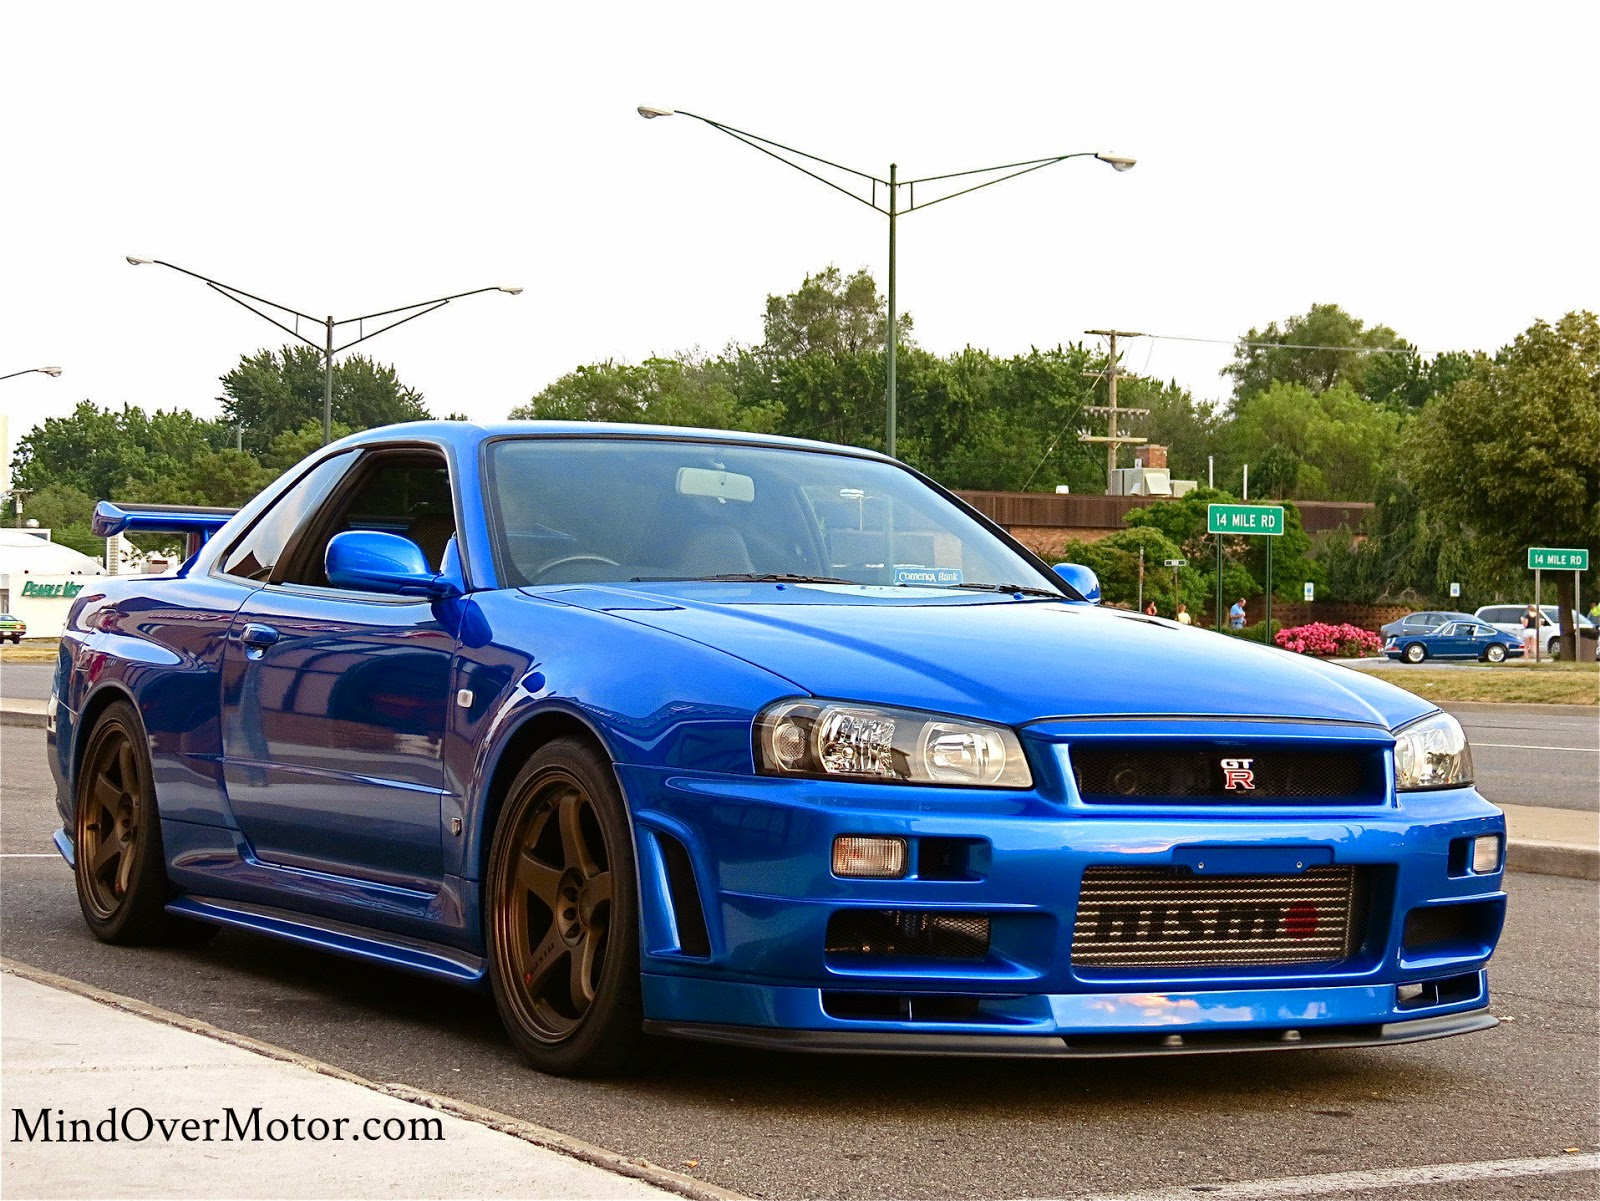 Fast Cars Here The R34 Gt R Skyline